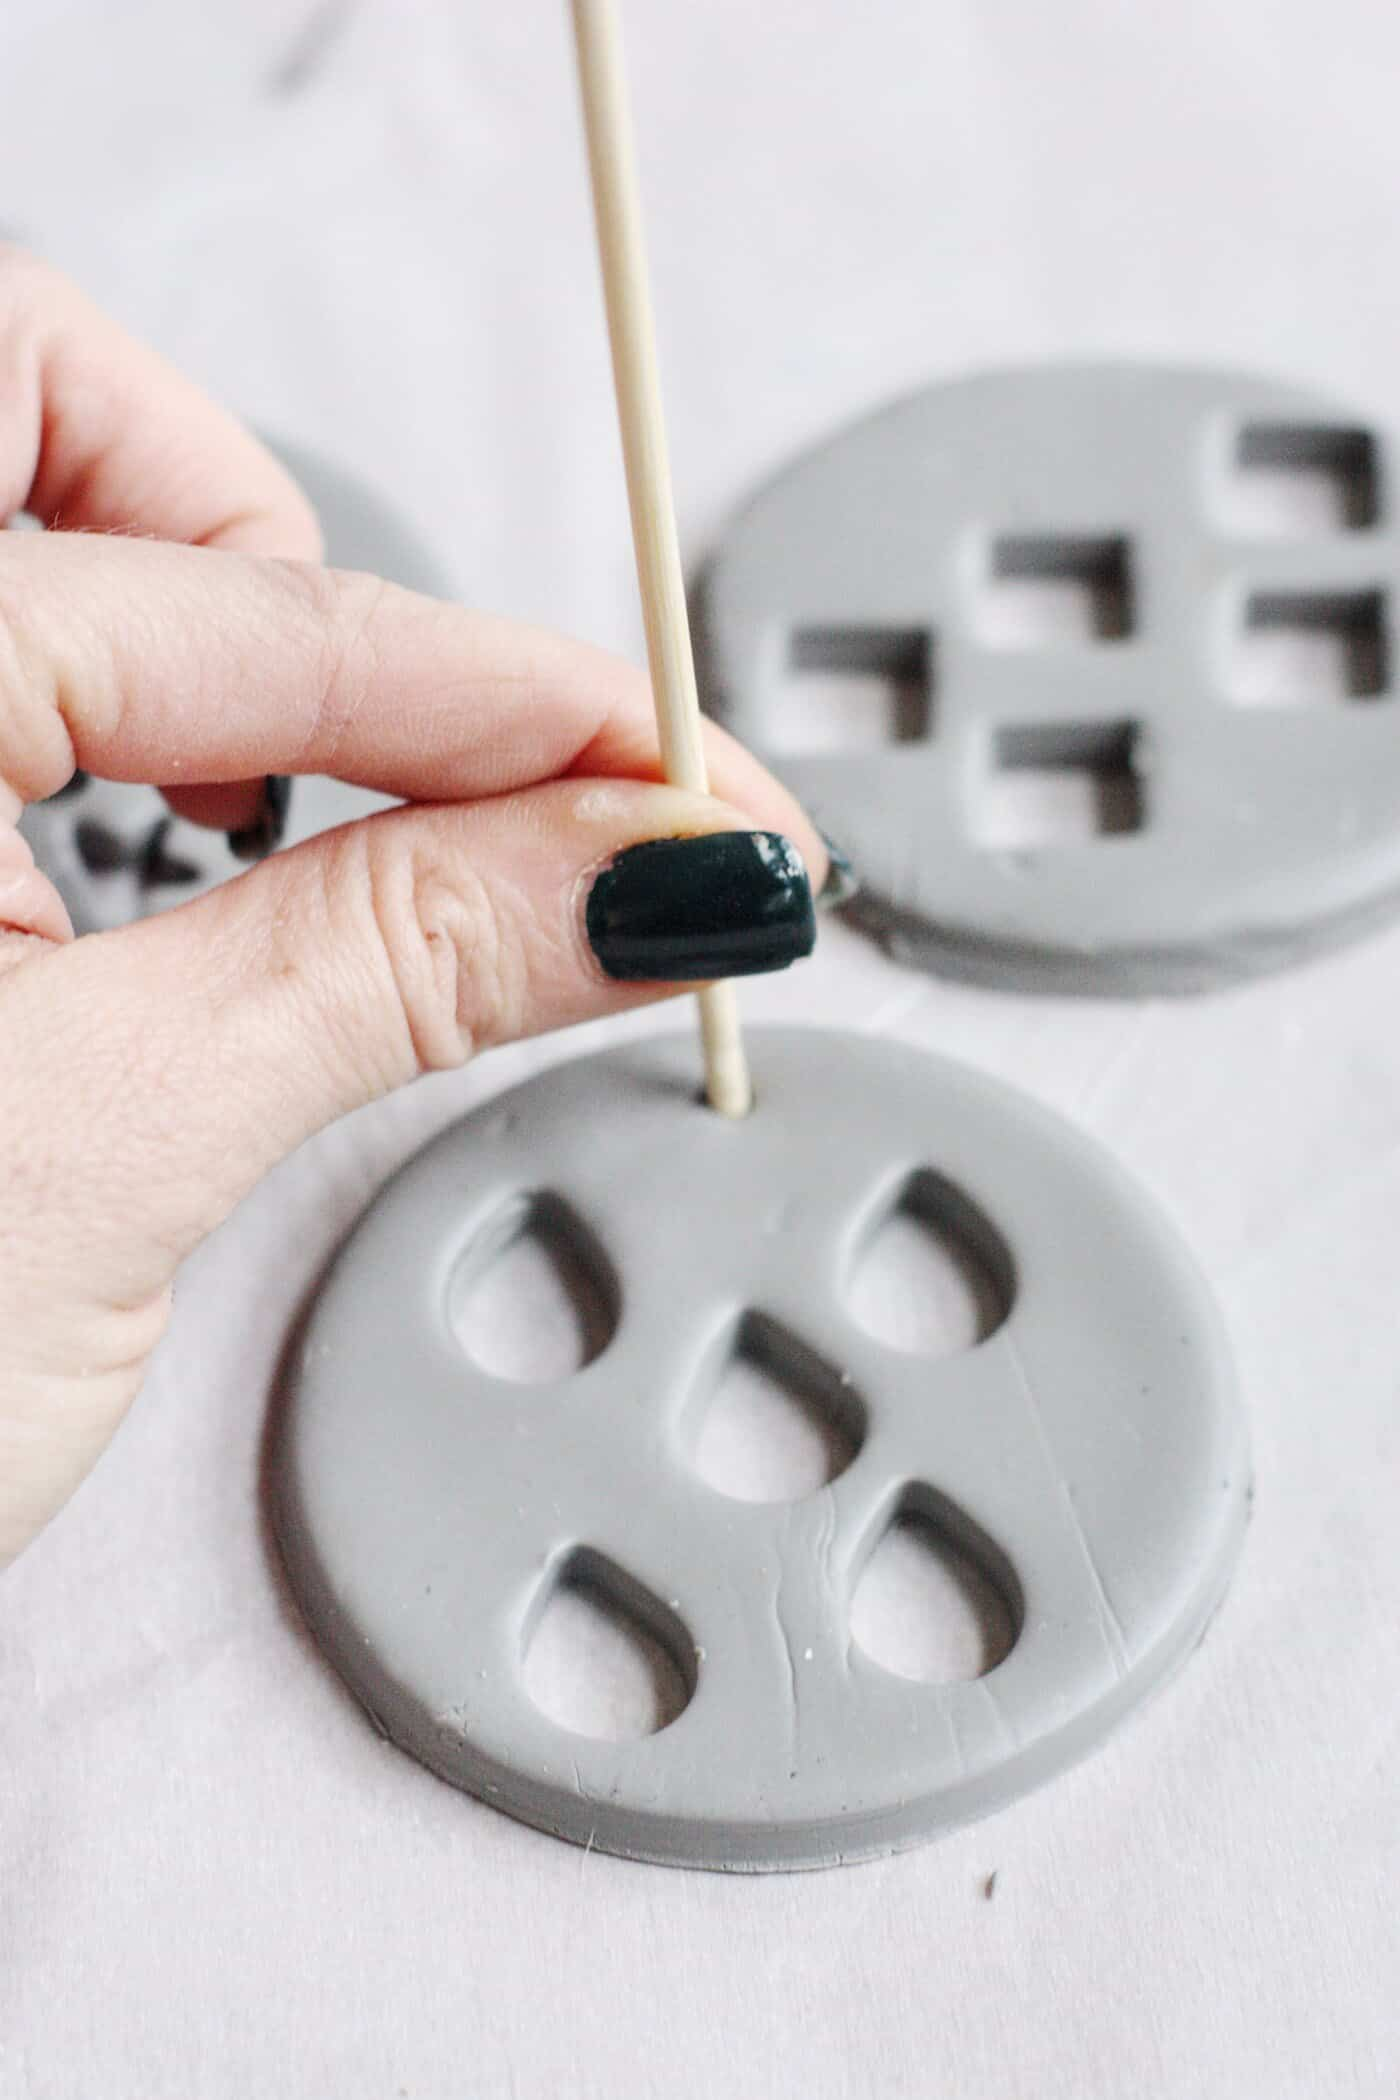 Press a hole into the top of a clay ornament using a skewer